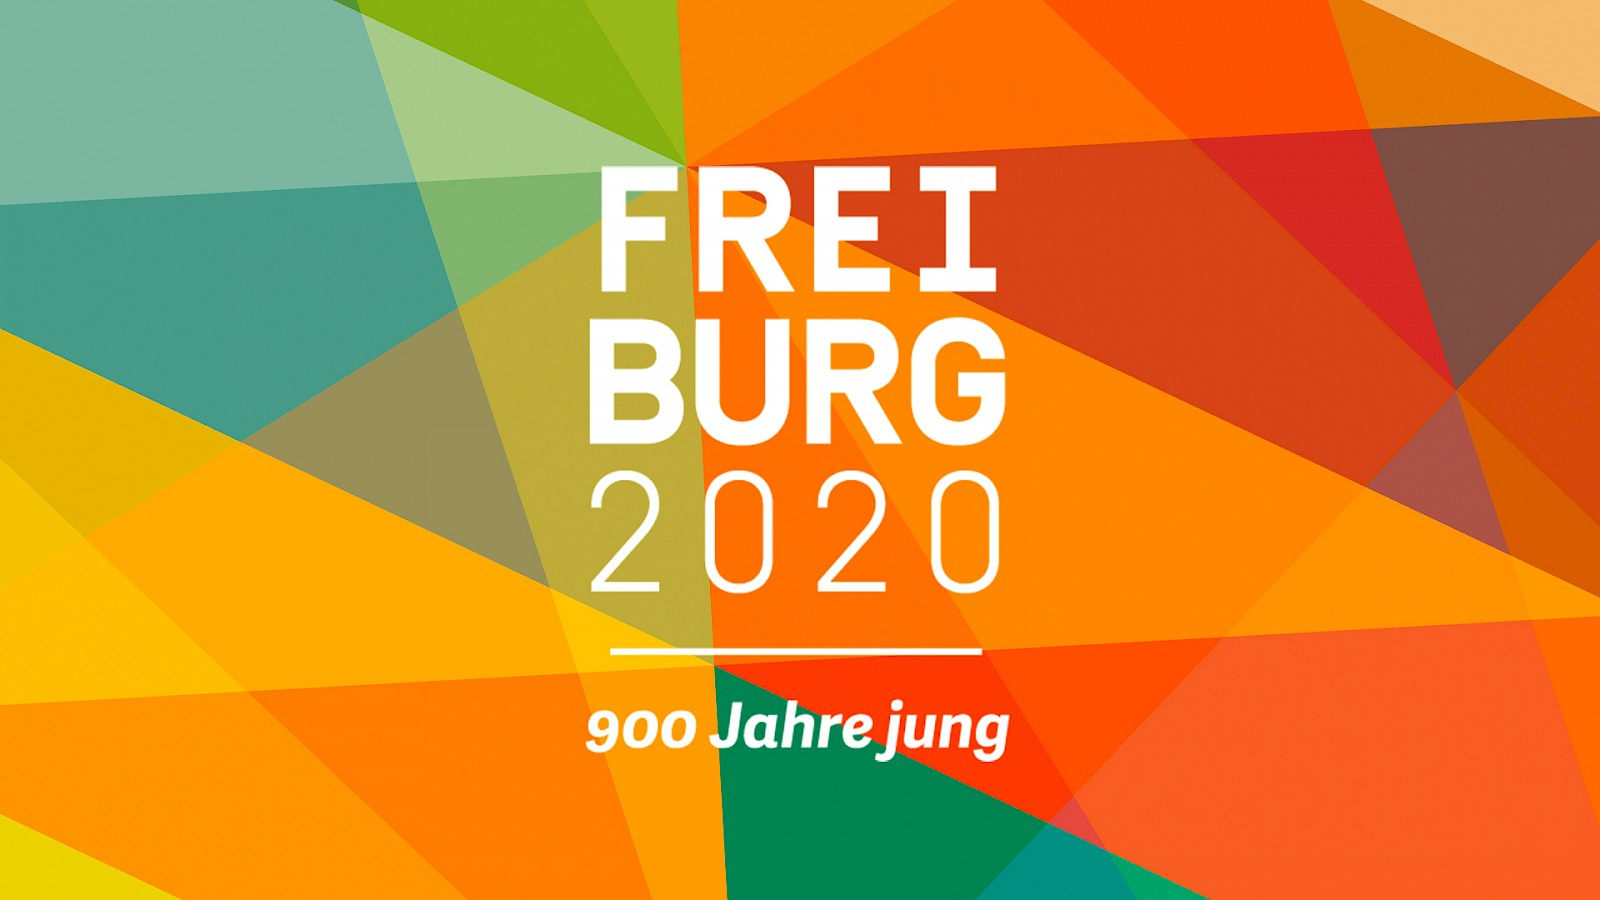 Freiburg 2020 – Design Visual, Quelle: designconcepts